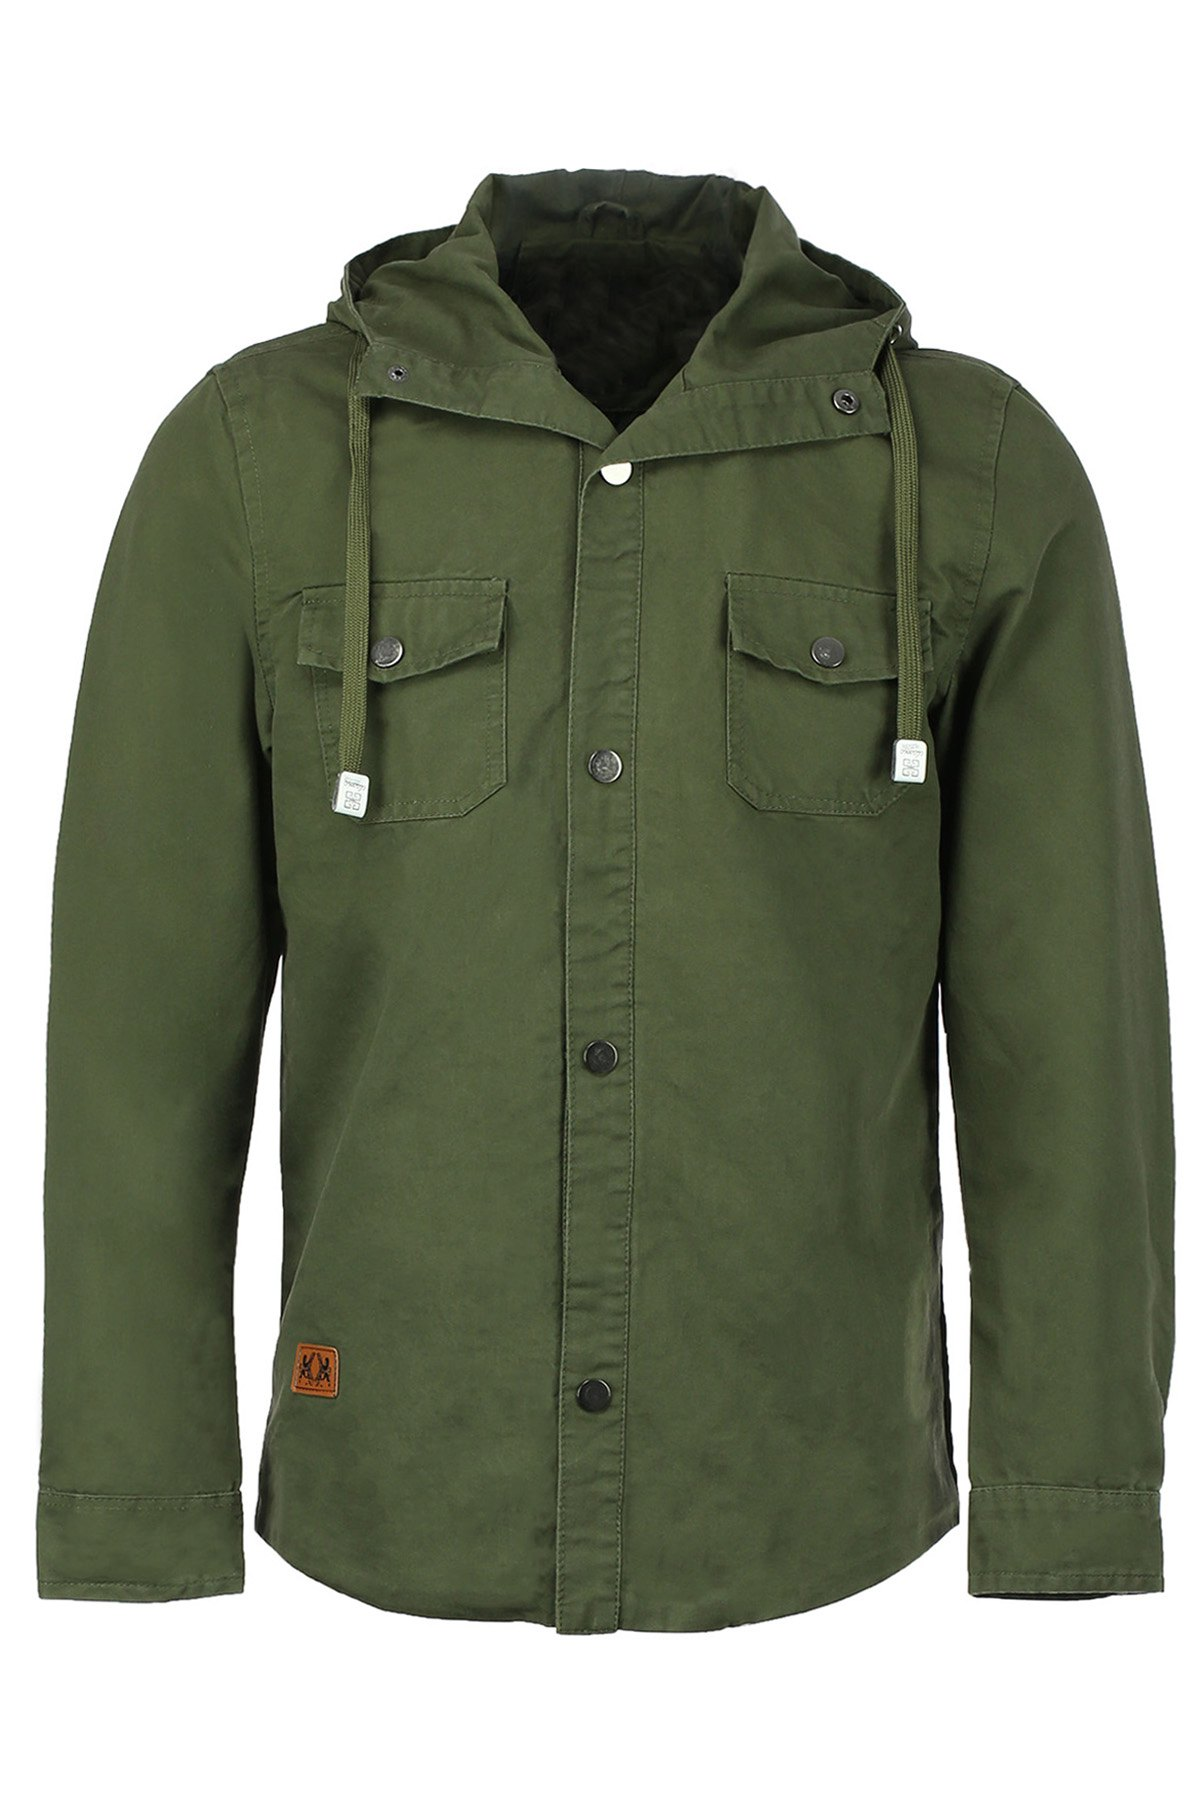 Military Style Hooded Double Pocket Solid Color Long Sleeves Men's Fatigue Jacket